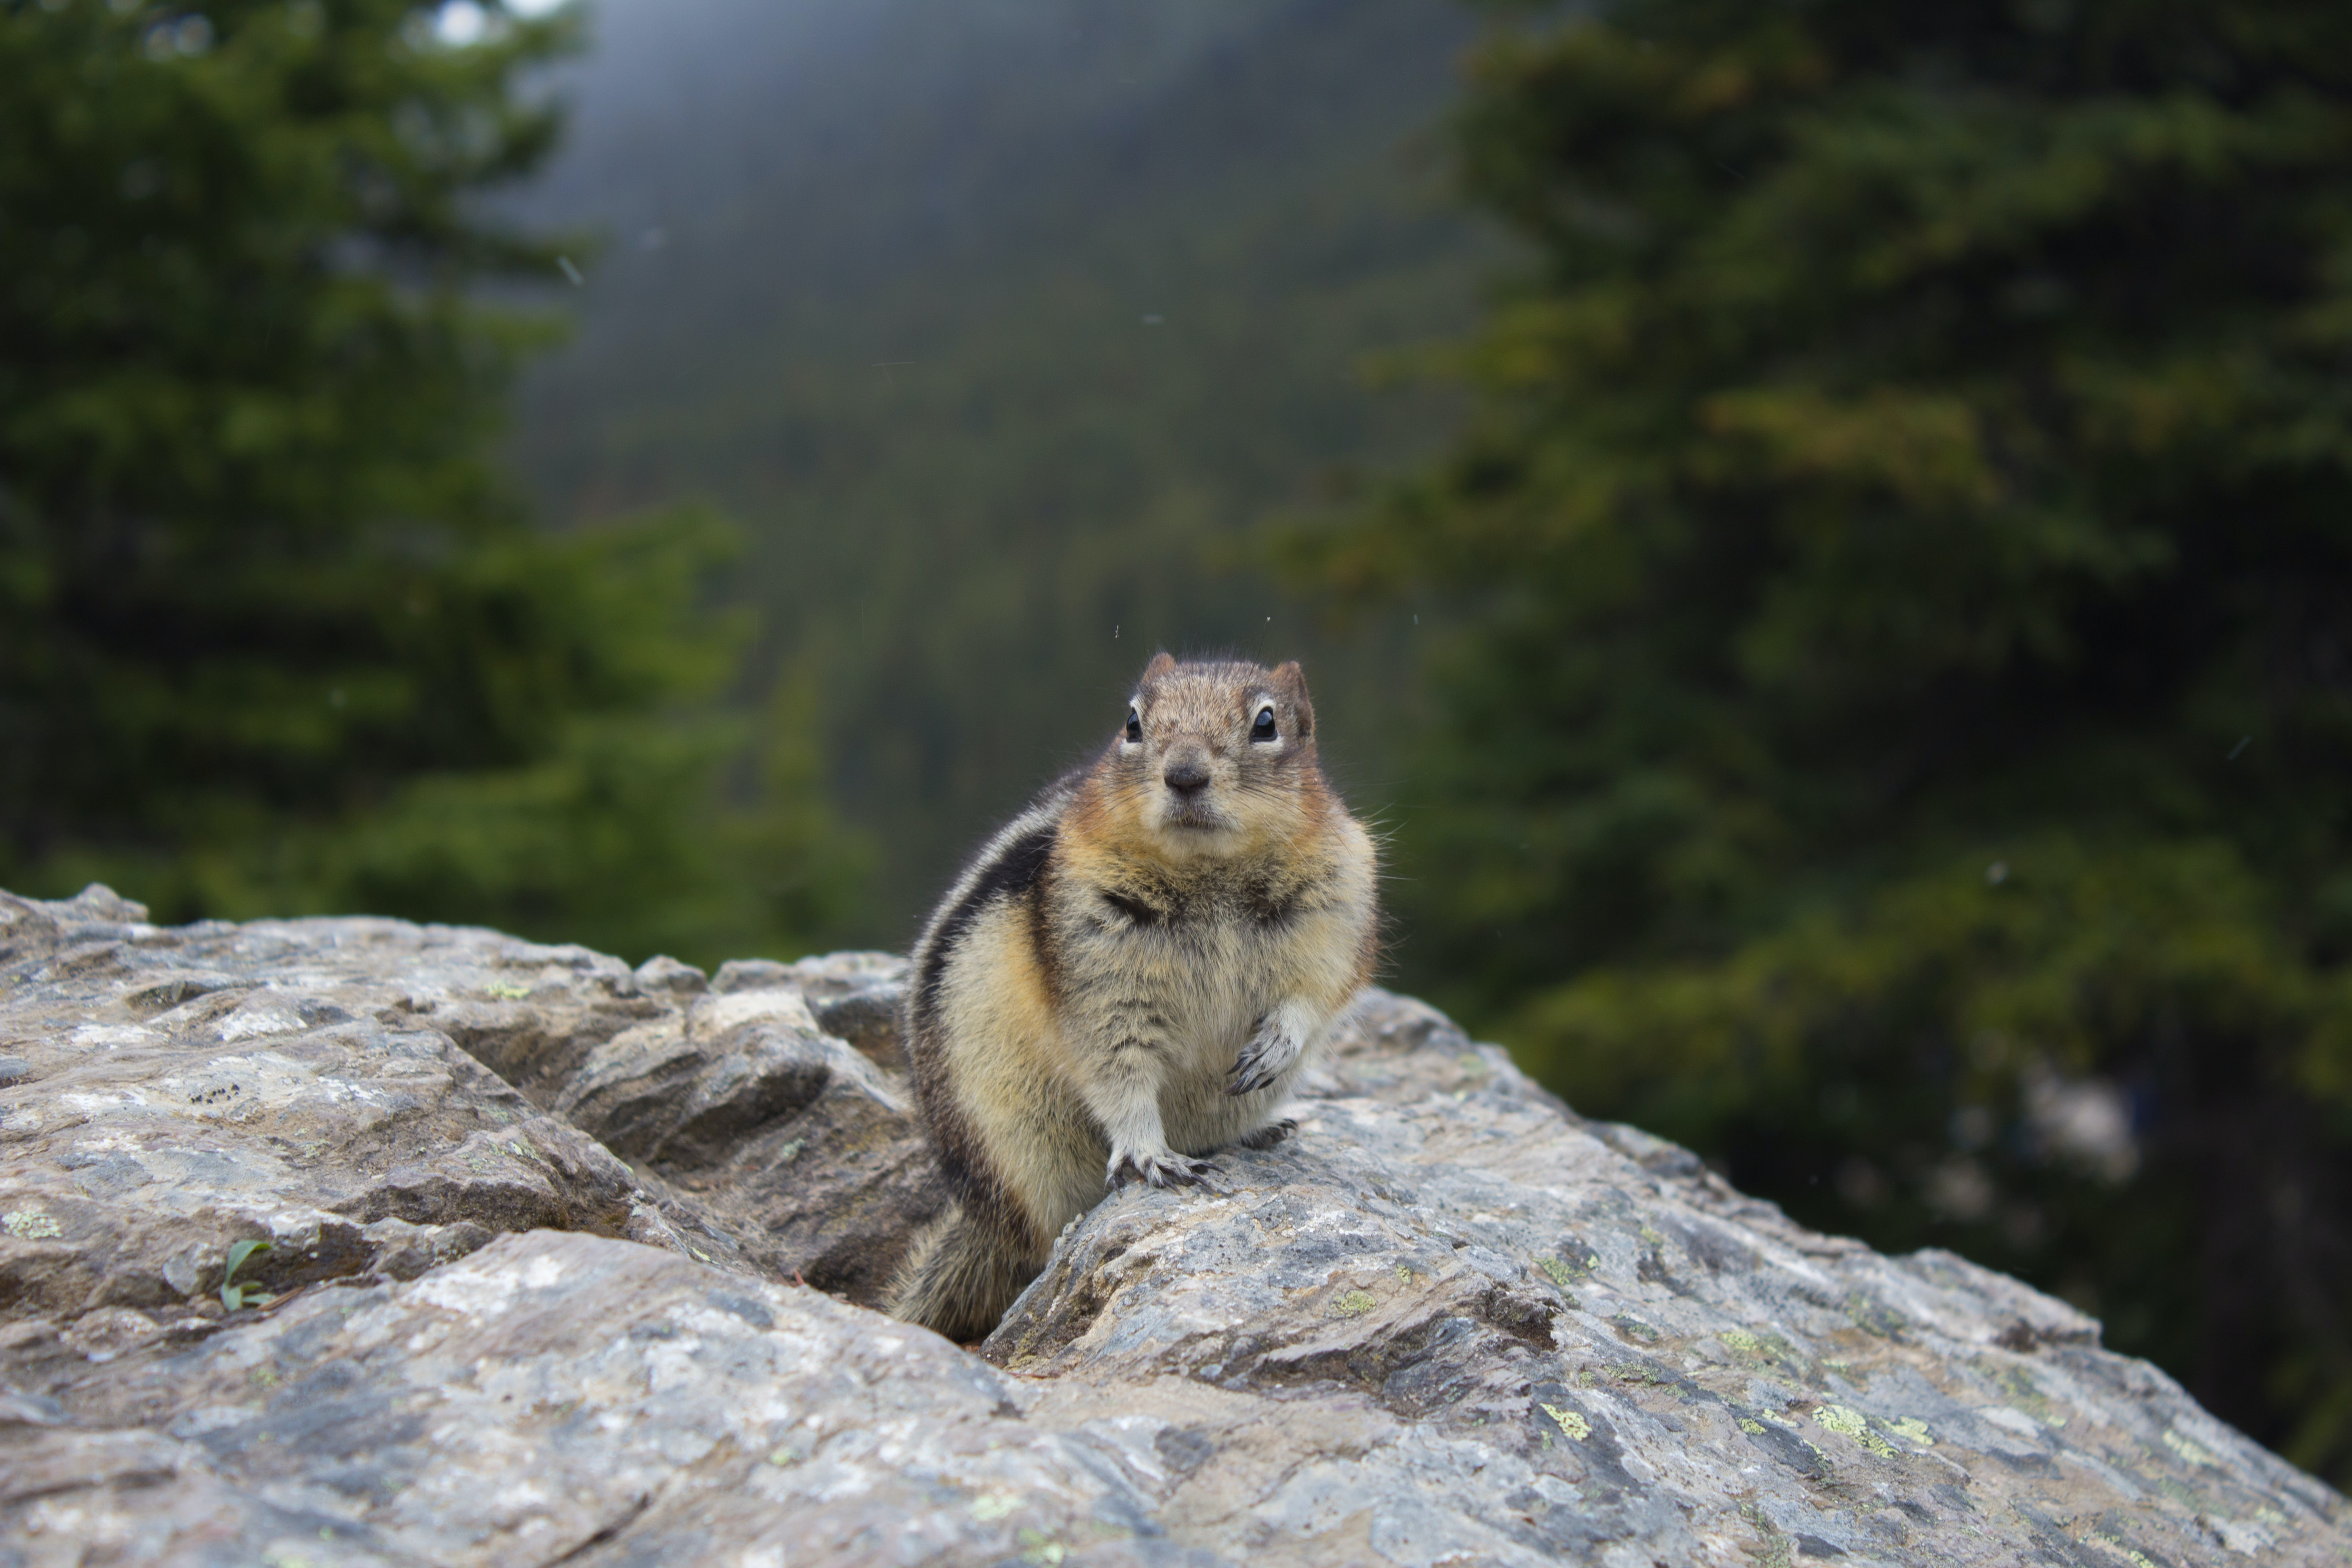 brown and white squirrel on rock during daytime